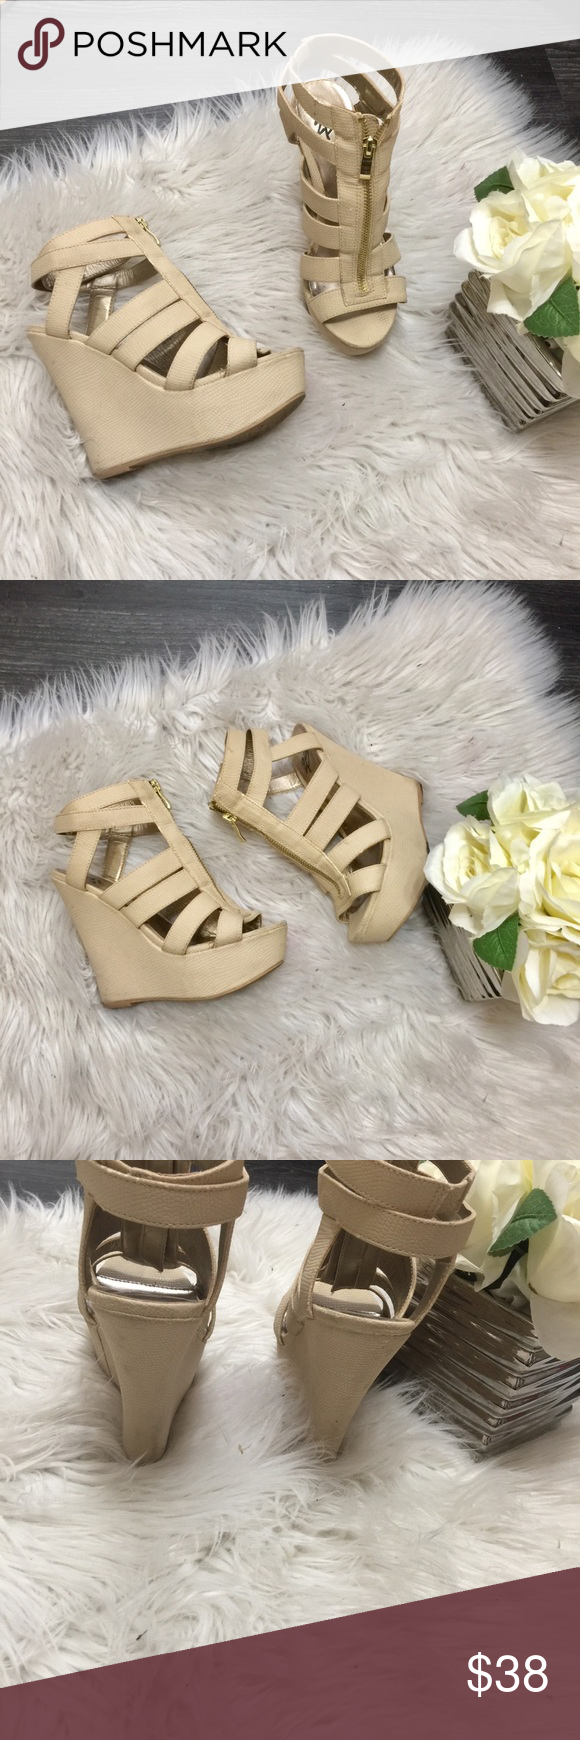 ea22cb01816d 2B Bebe platform wedge sandals 2B Bebe platform wedge cream color zip up  strappy sandals. In excellent condition. Worn just a few times. Snake skin  look.